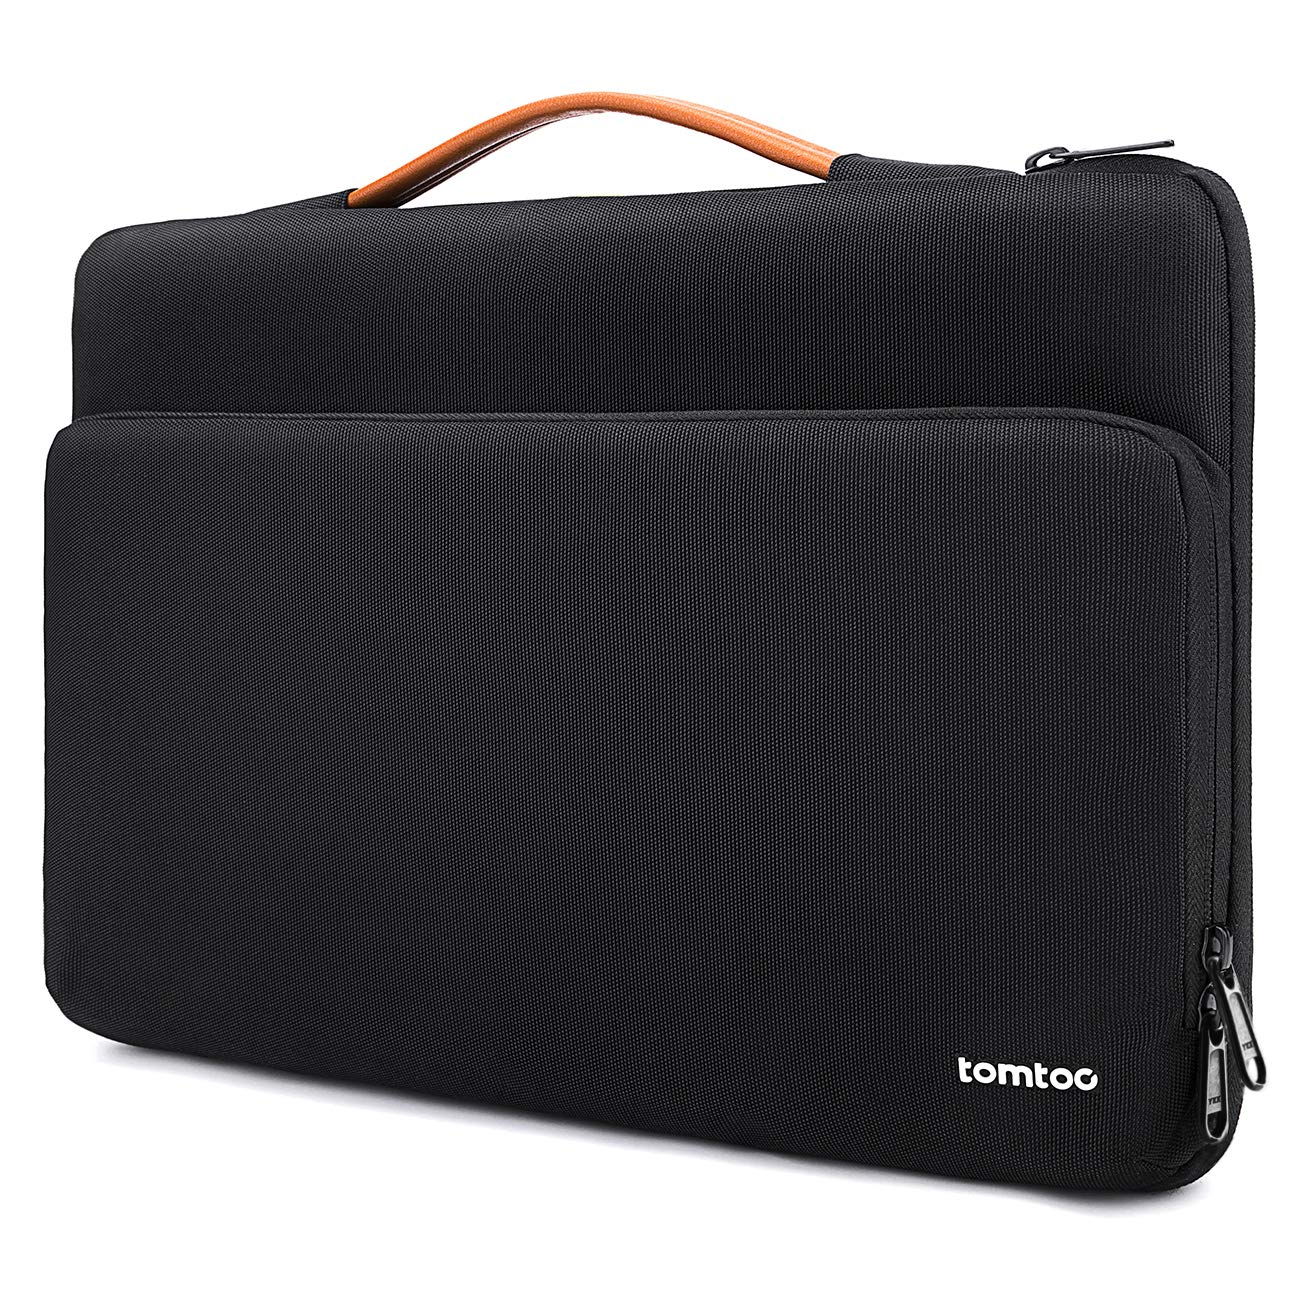 tomtoc Protective 13-13.5 inch Laptop Sleeve Notebook Handle Bag Compatible with 13.3'' MacBook Air | 13'' MacBook Pro Retina 2012-2015 | 13.5'' Surface Book | Surface Laptop, with Accessory Pocket